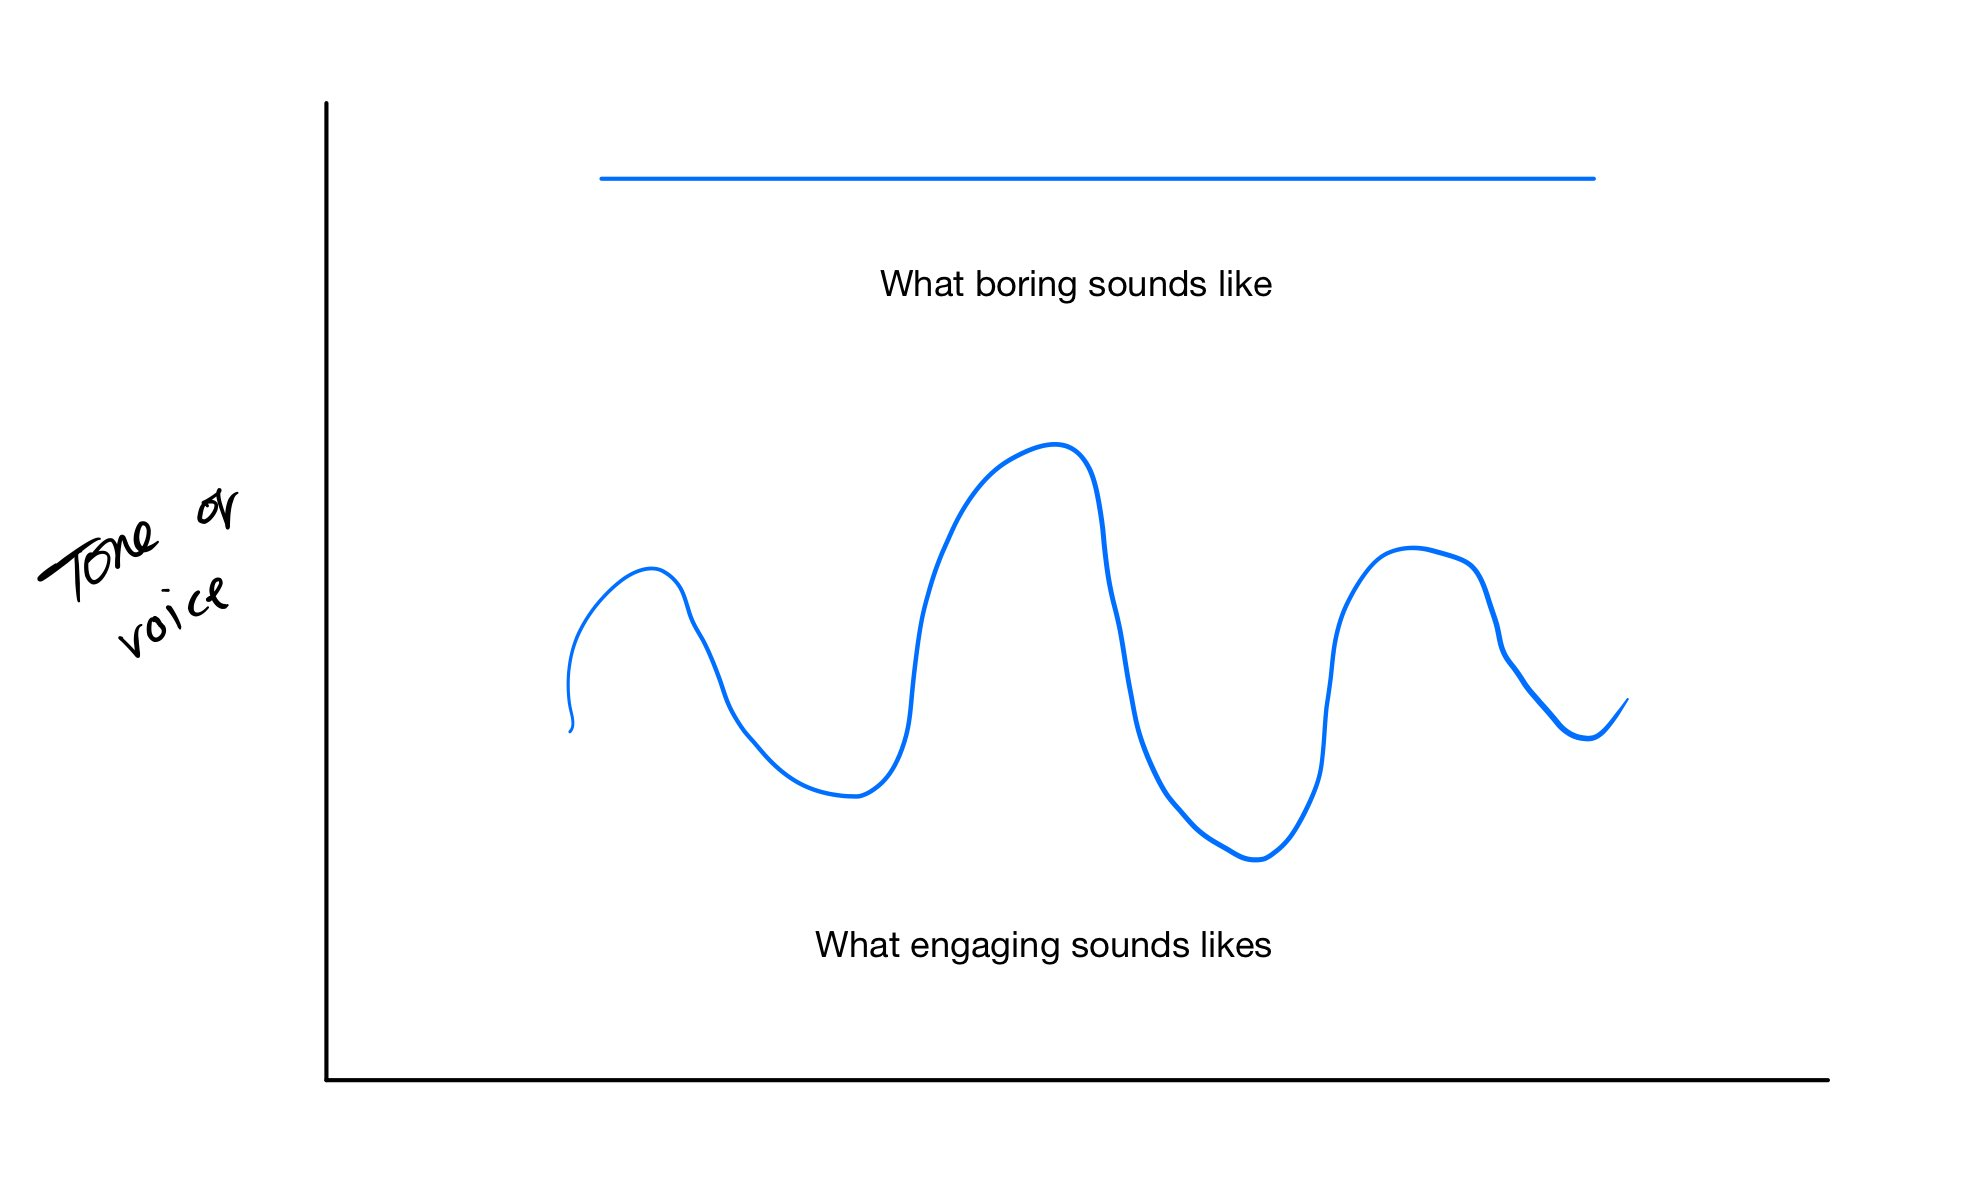 what boring sounds like